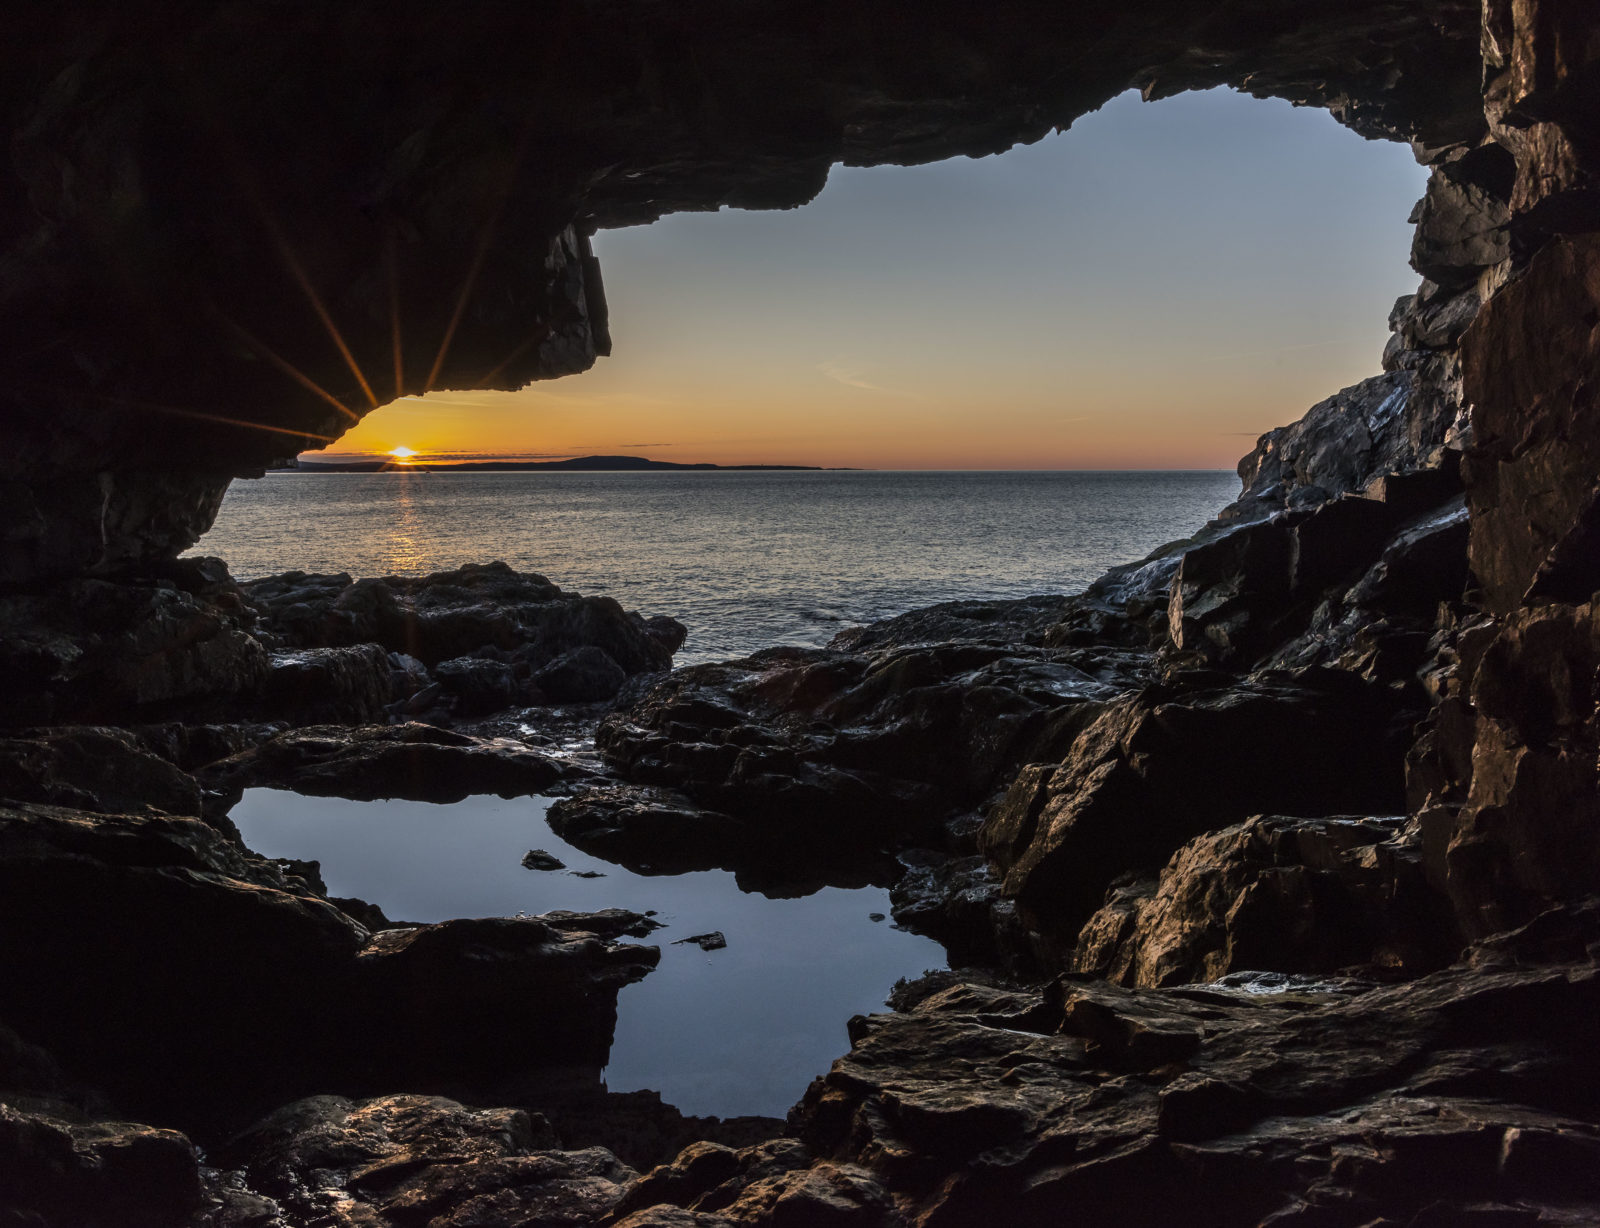 Sunrise at Anemone Cave